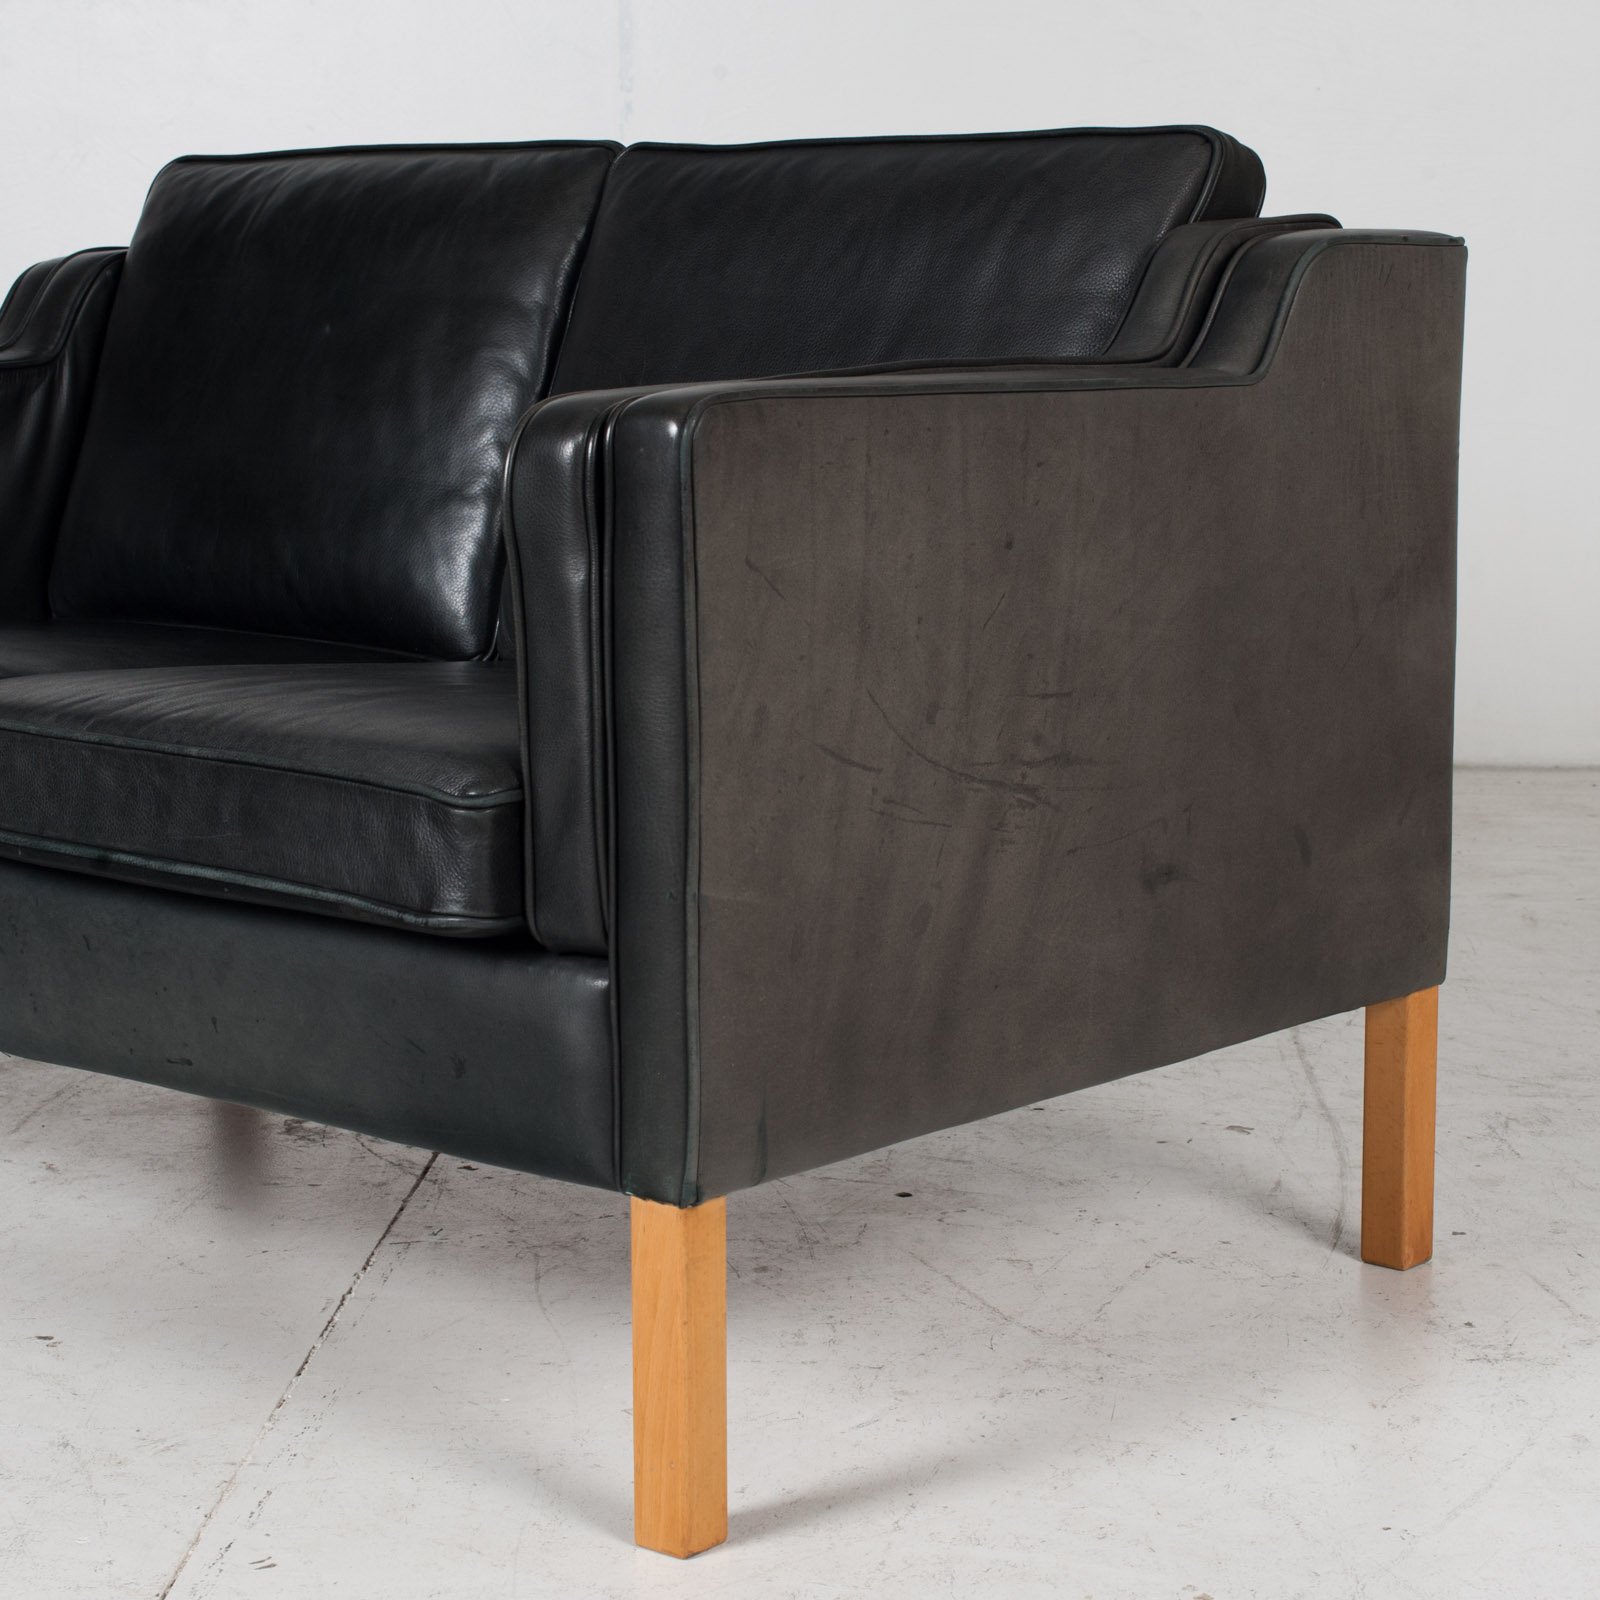 2 Seat Sofa By Stouby In Black Leather, 1960s, Denmark 6